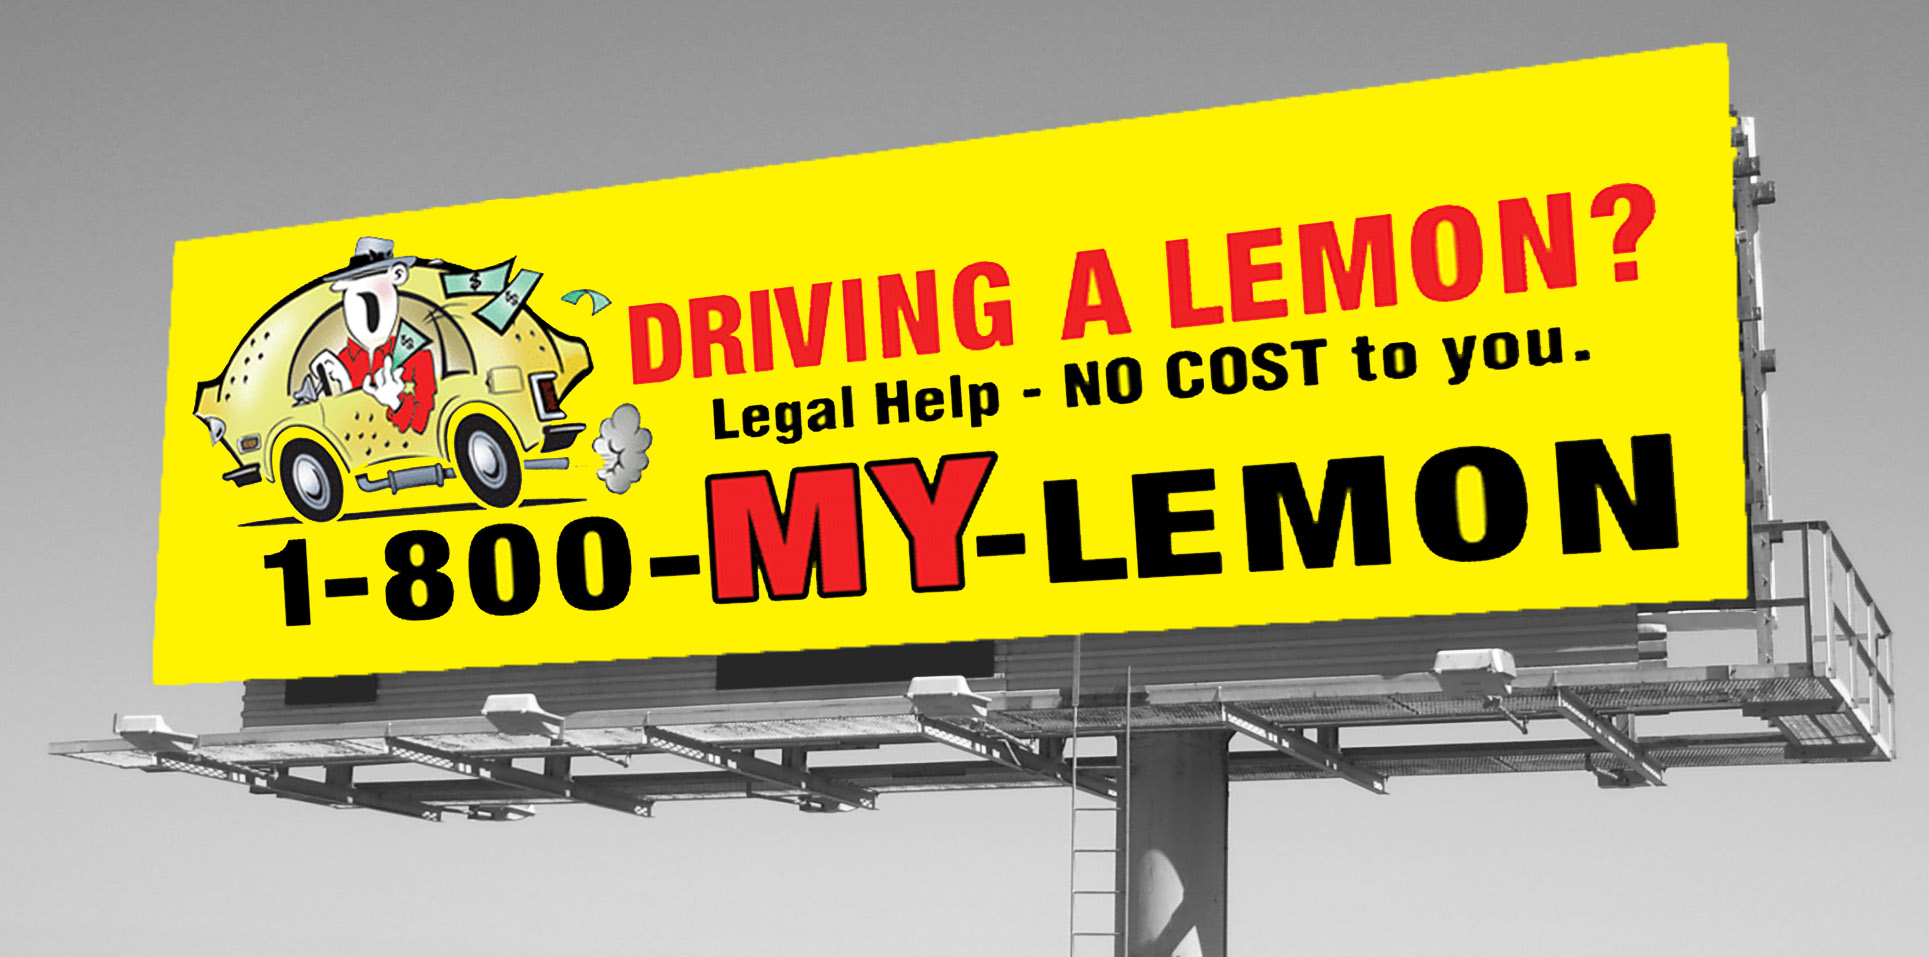 Regrettably, there are no US-style lemon laws in Australia - yet